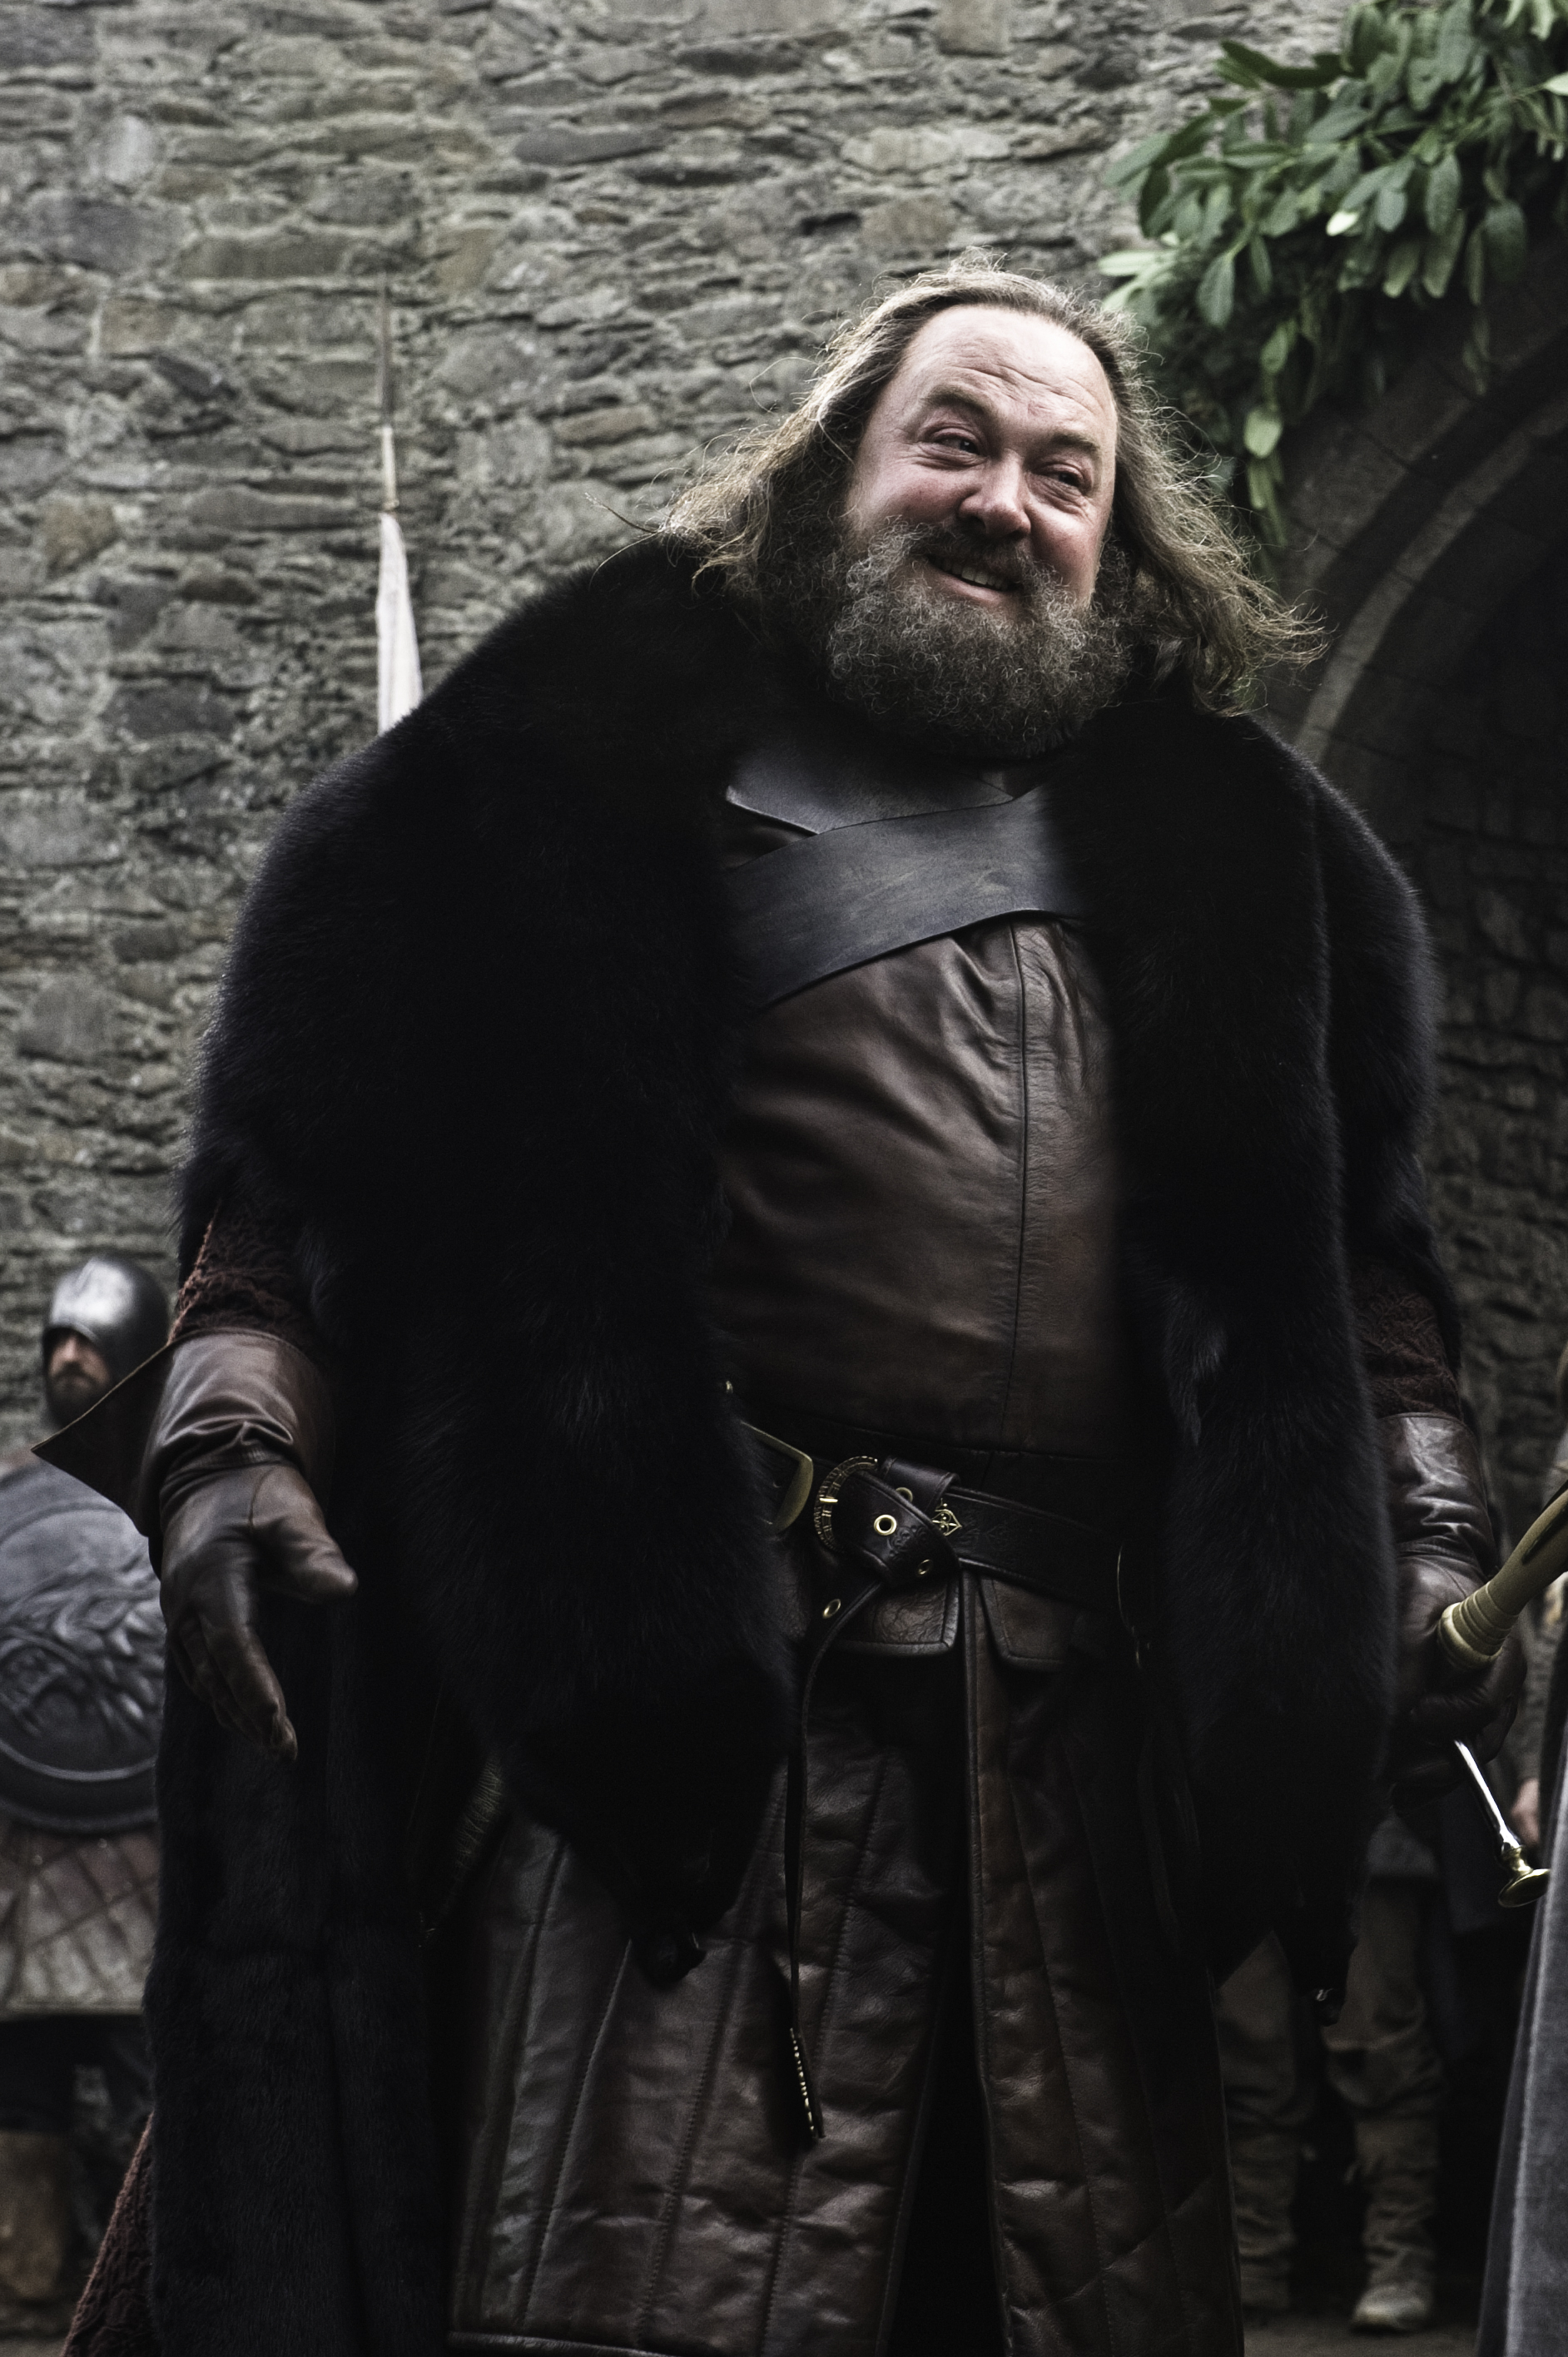 GAME OF THRONES S1 EP1 (6)